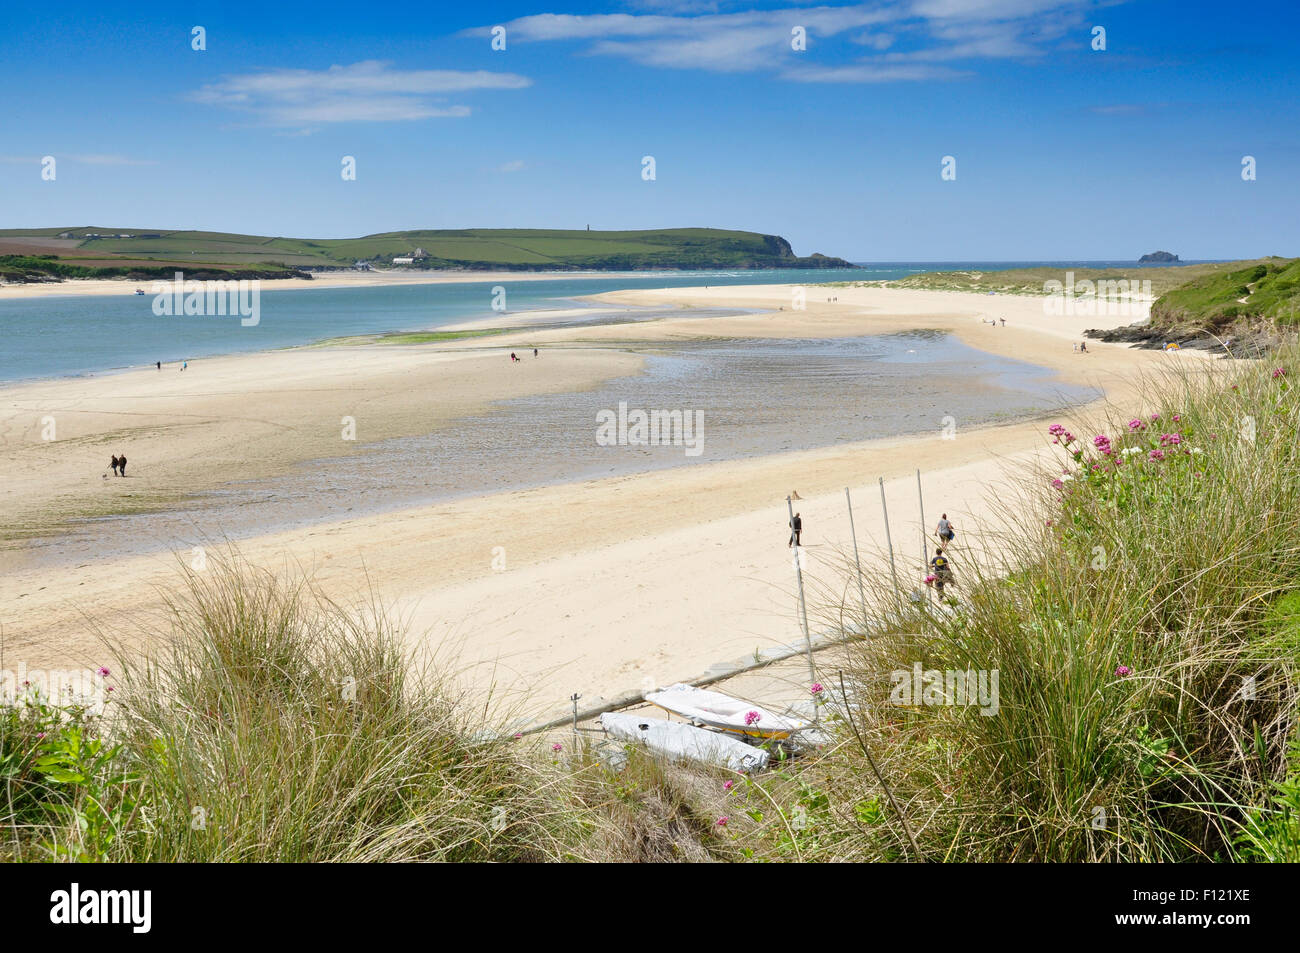 North Cornwall - low tide river Camel estuary - huge sandbar - ribbon of blue water - distant Stepper Point - sun - Stock Image